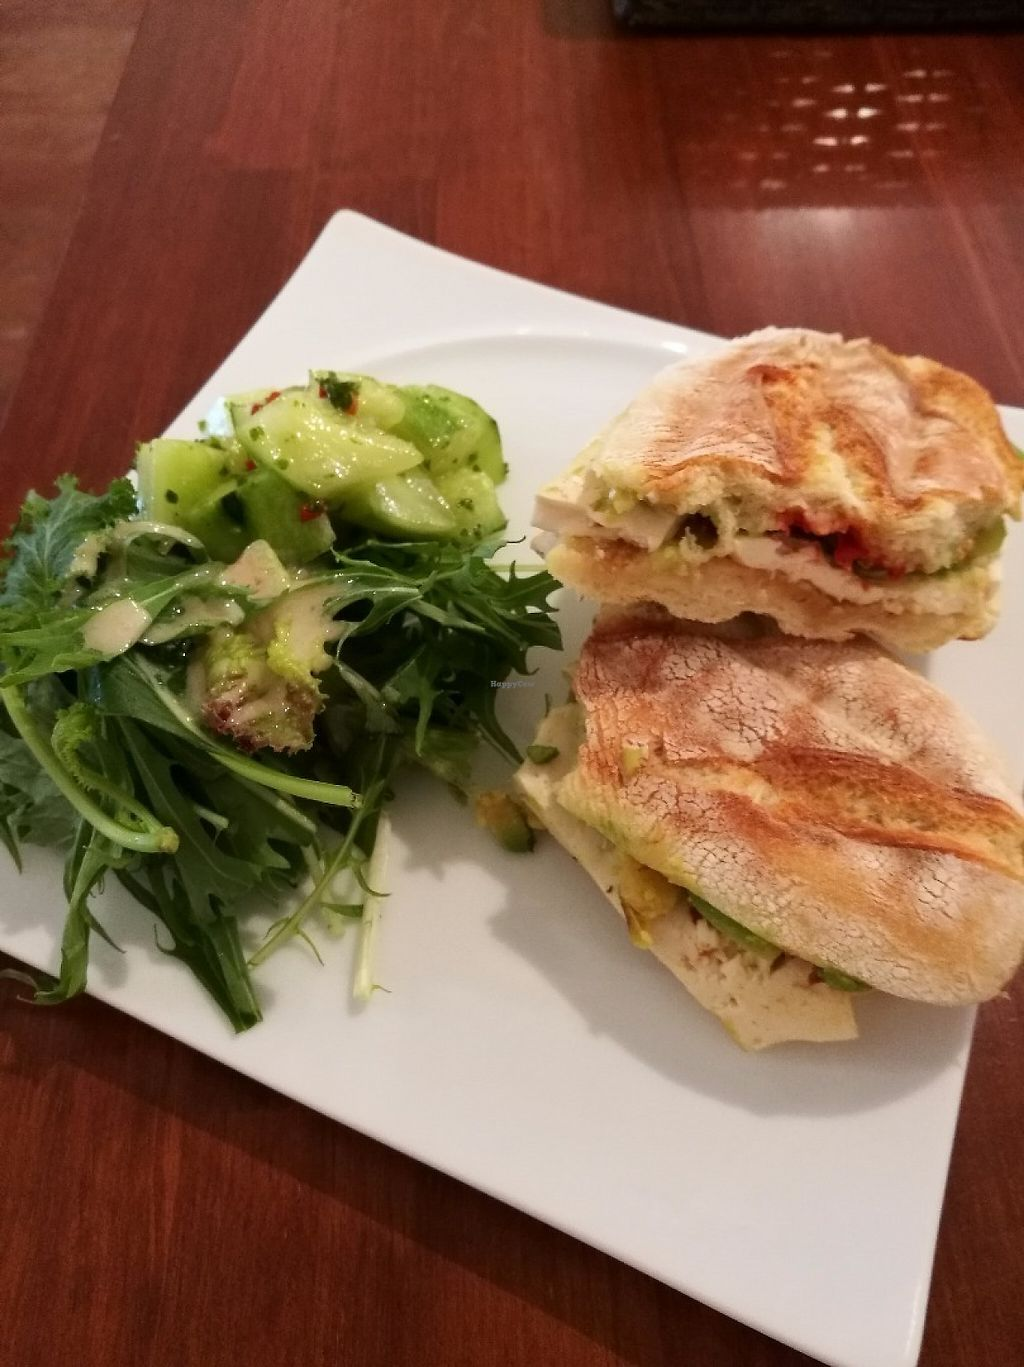 """Photo of Taste and Scent  by <a href=""""/members/profile/wanderin_around"""">wanderin_around</a> <br/>Tofu and avocado panini <br/> May 13, 2017  - <a href='/contact/abuse/image/92055/258419'>Report</a>"""